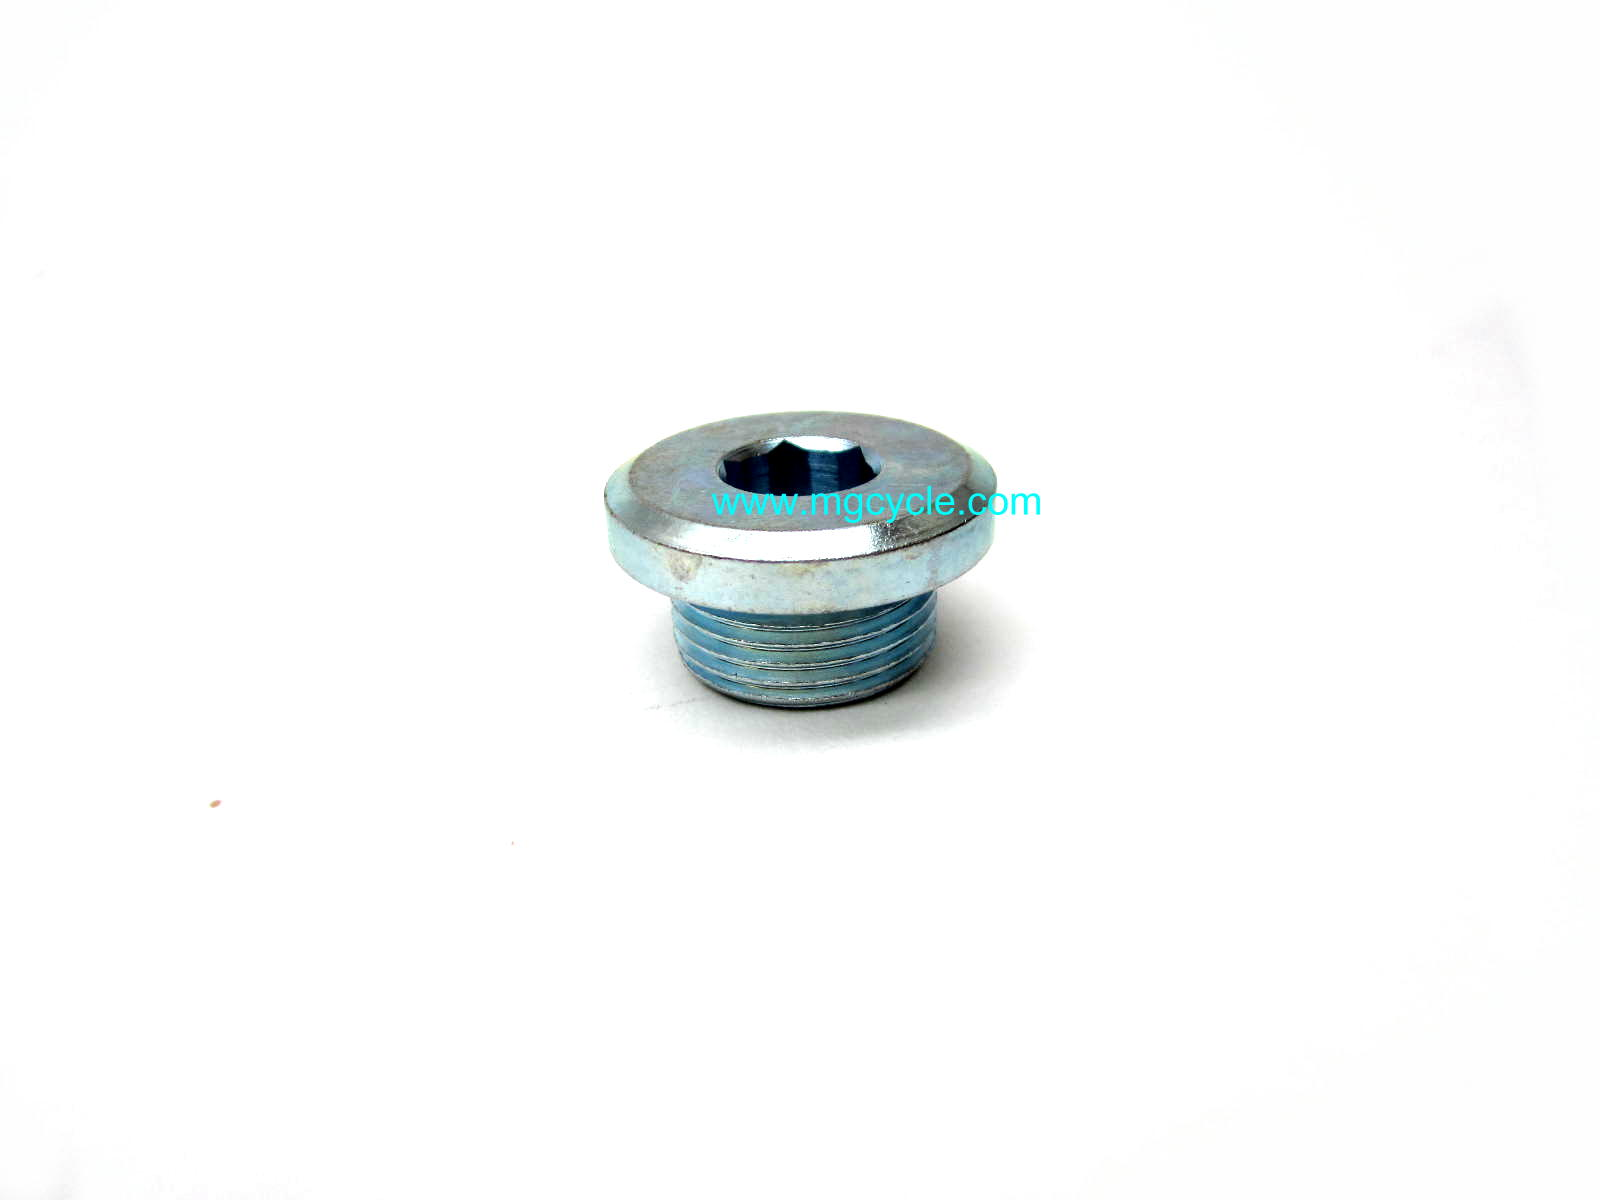 Access plug, trans-rear drive fill plug, allen head GU12022600